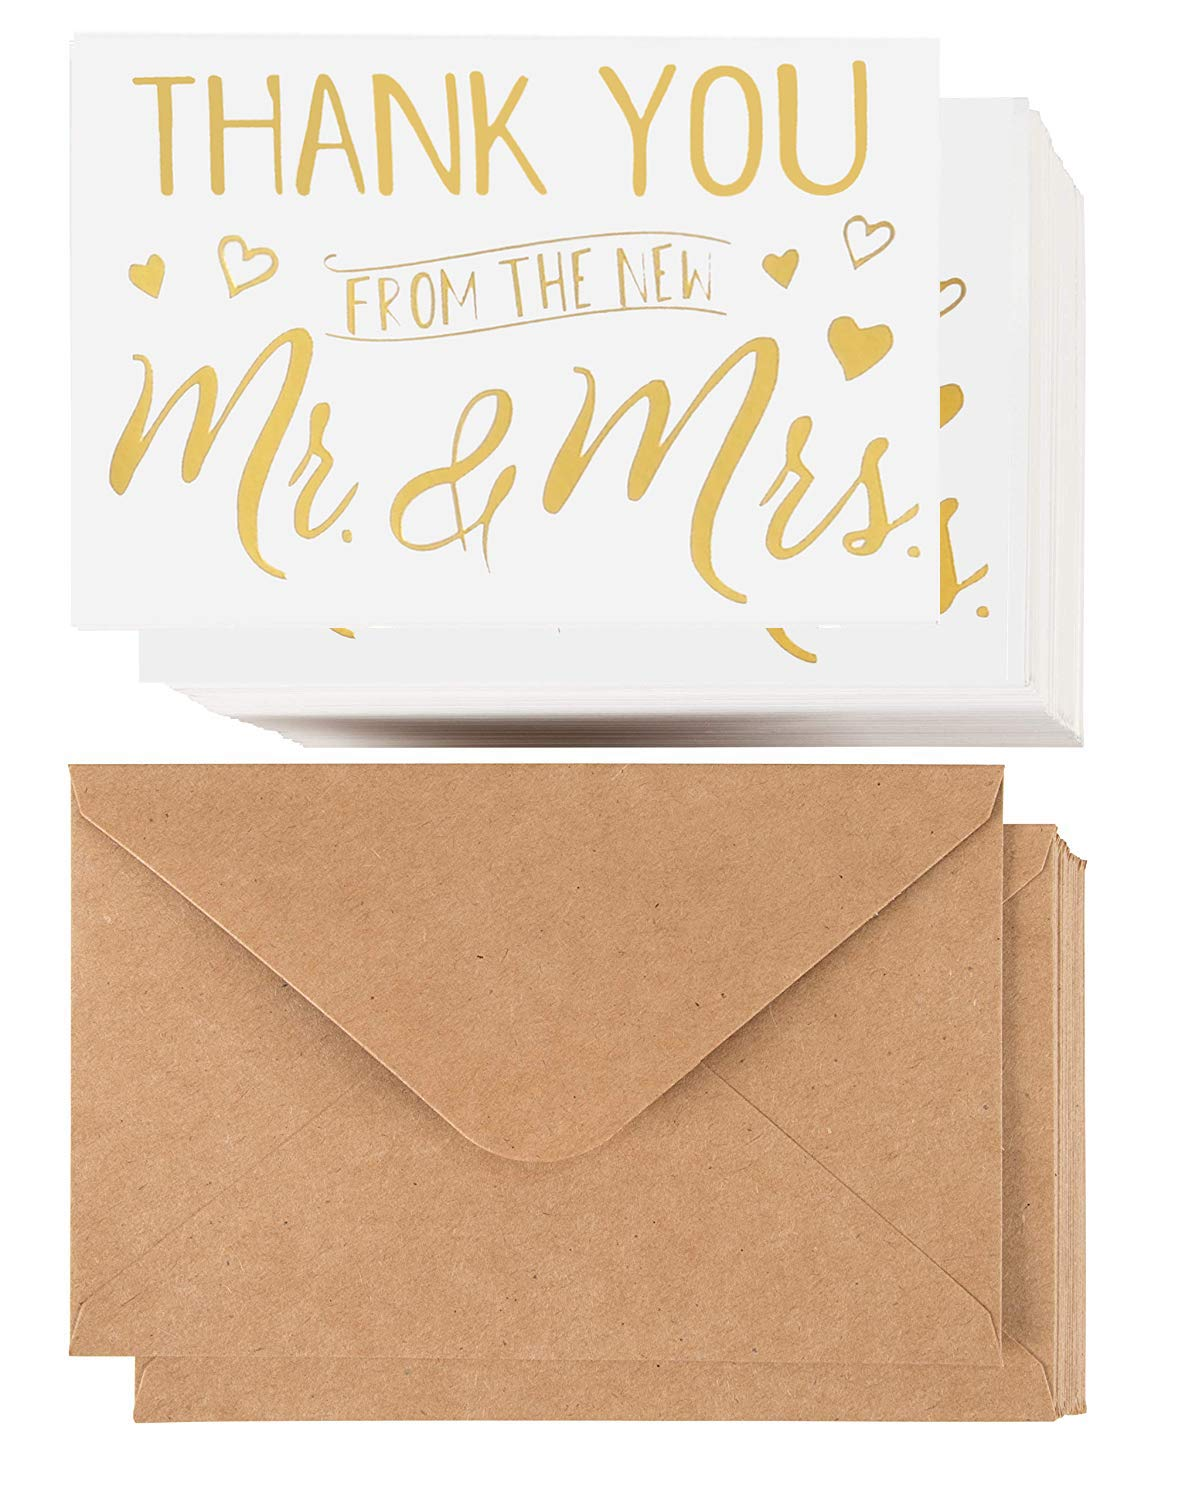 Wedding Thank You Cards - 100 Pack Blank Gold Foil Thank You from the New Mr & Mrs by AFRUCTUS